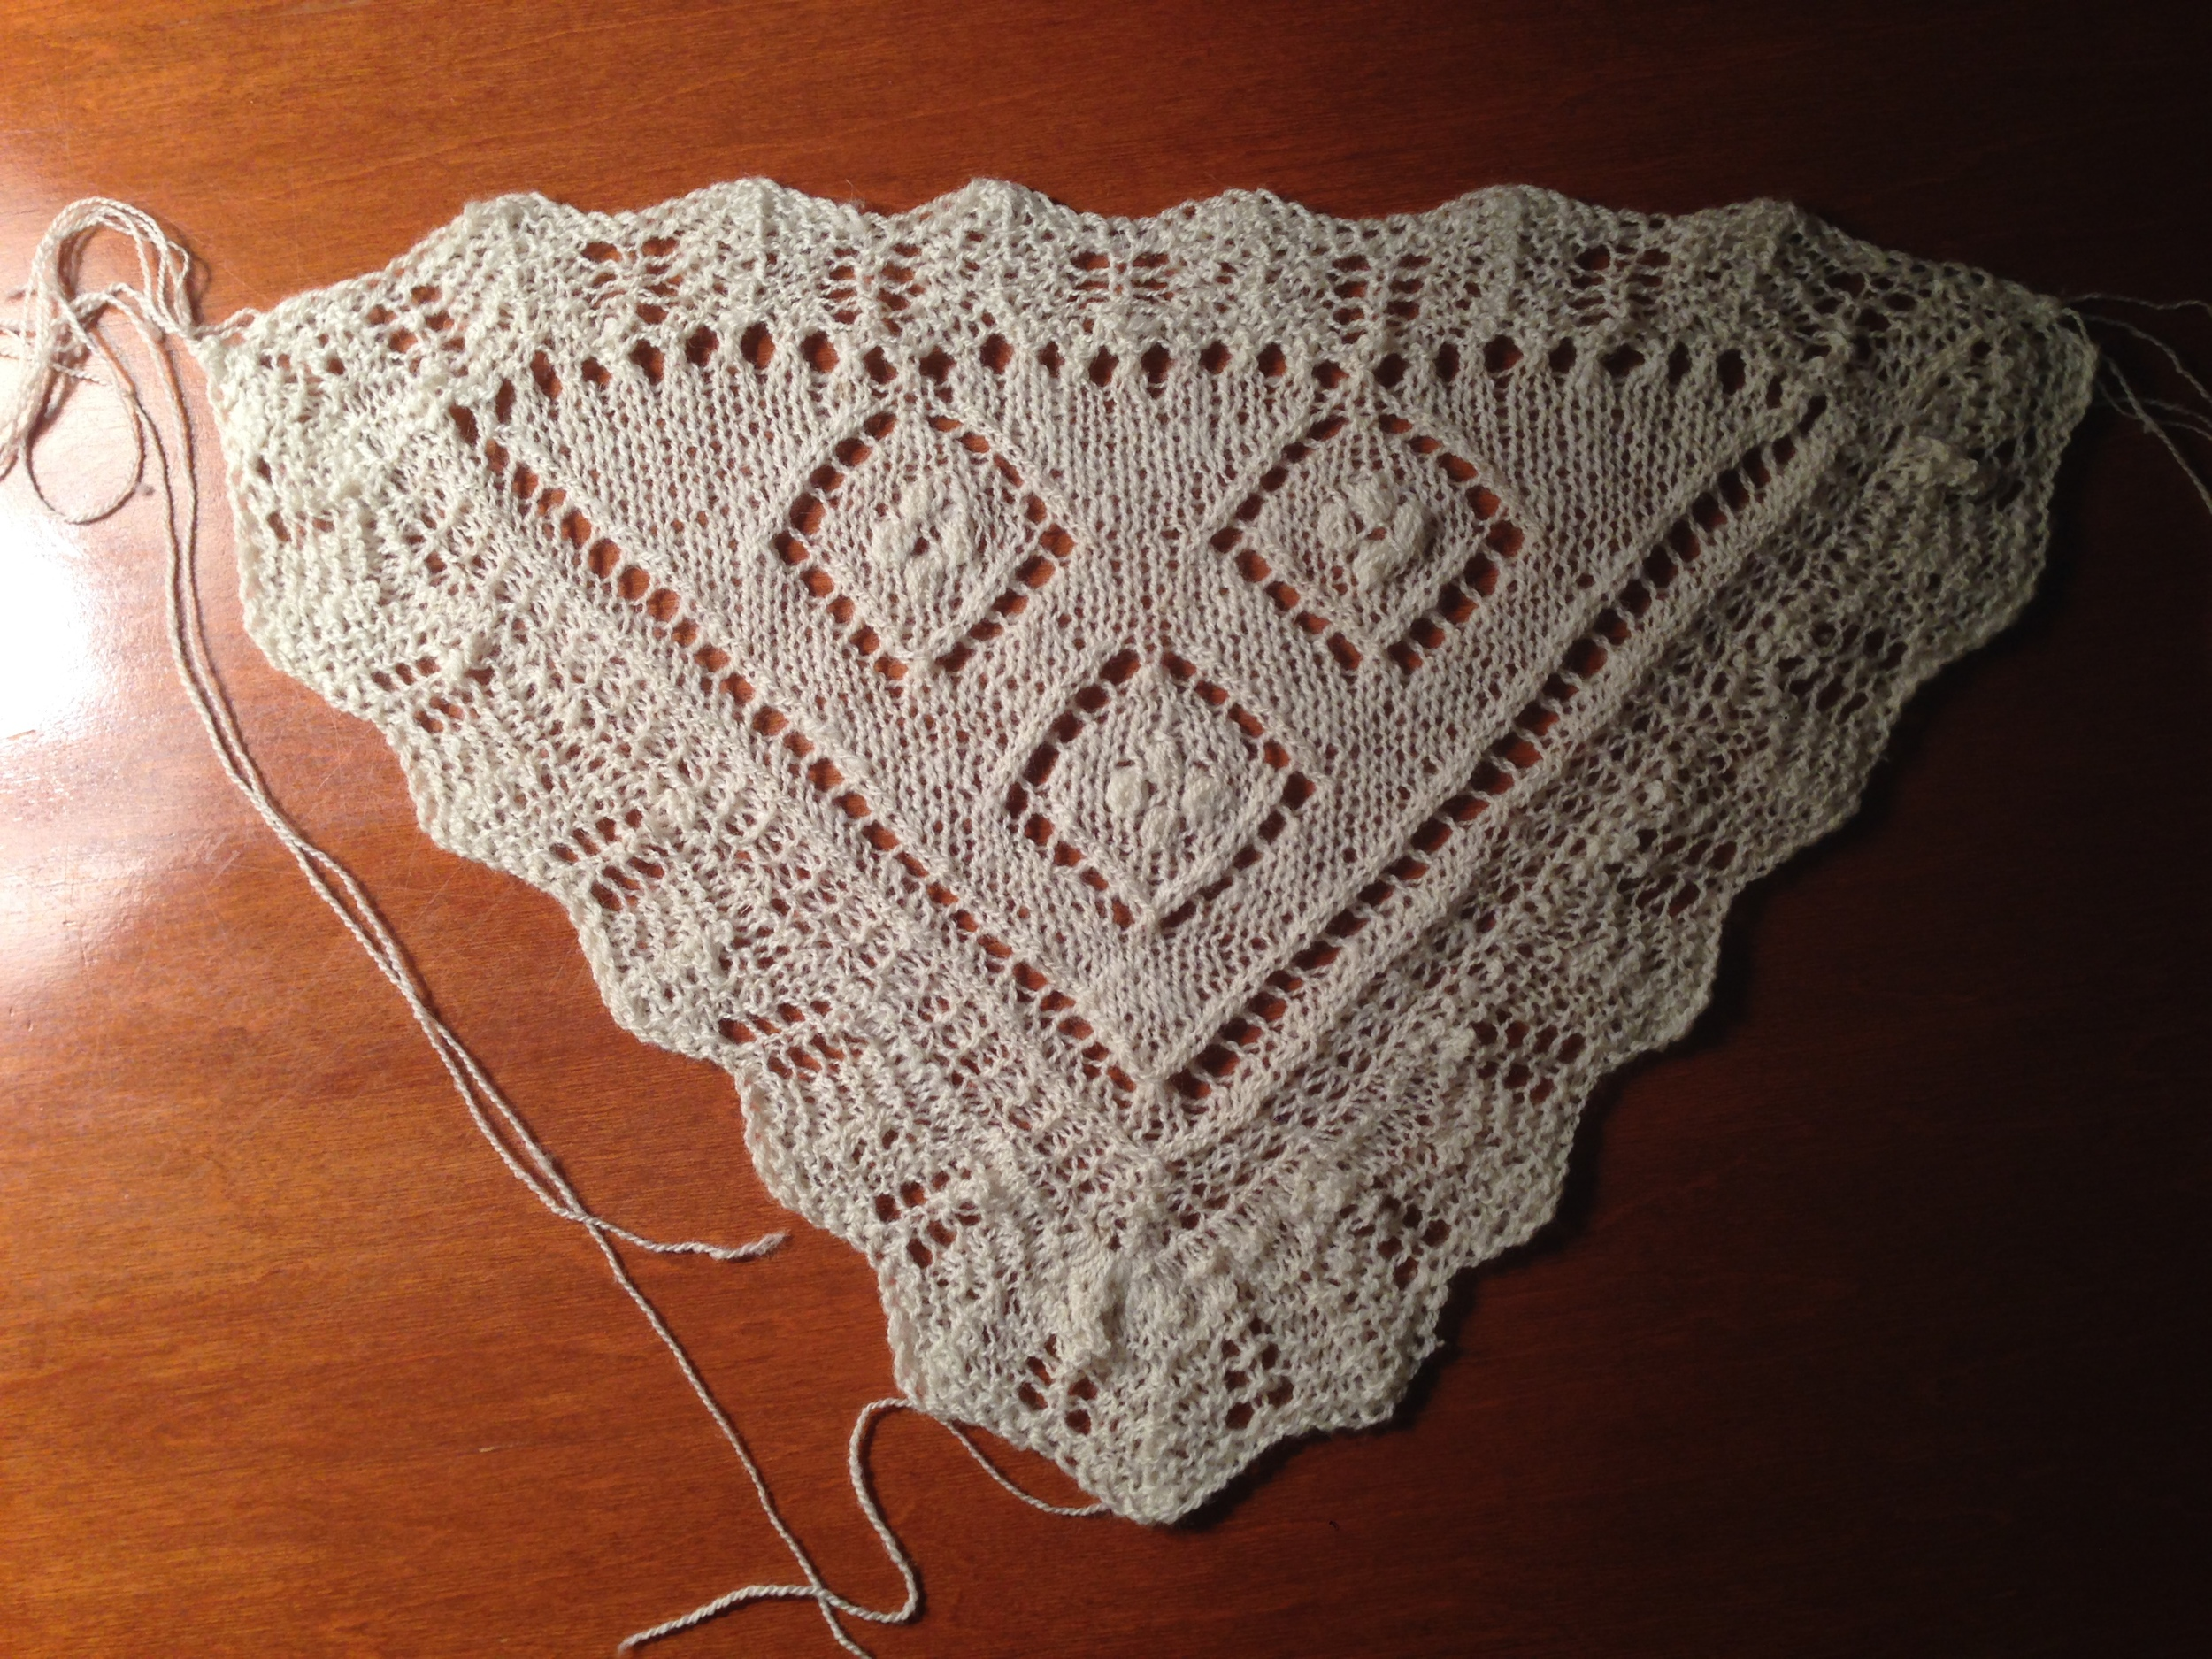 Go ahead, judge my end-weaving procrastination. I can take it.